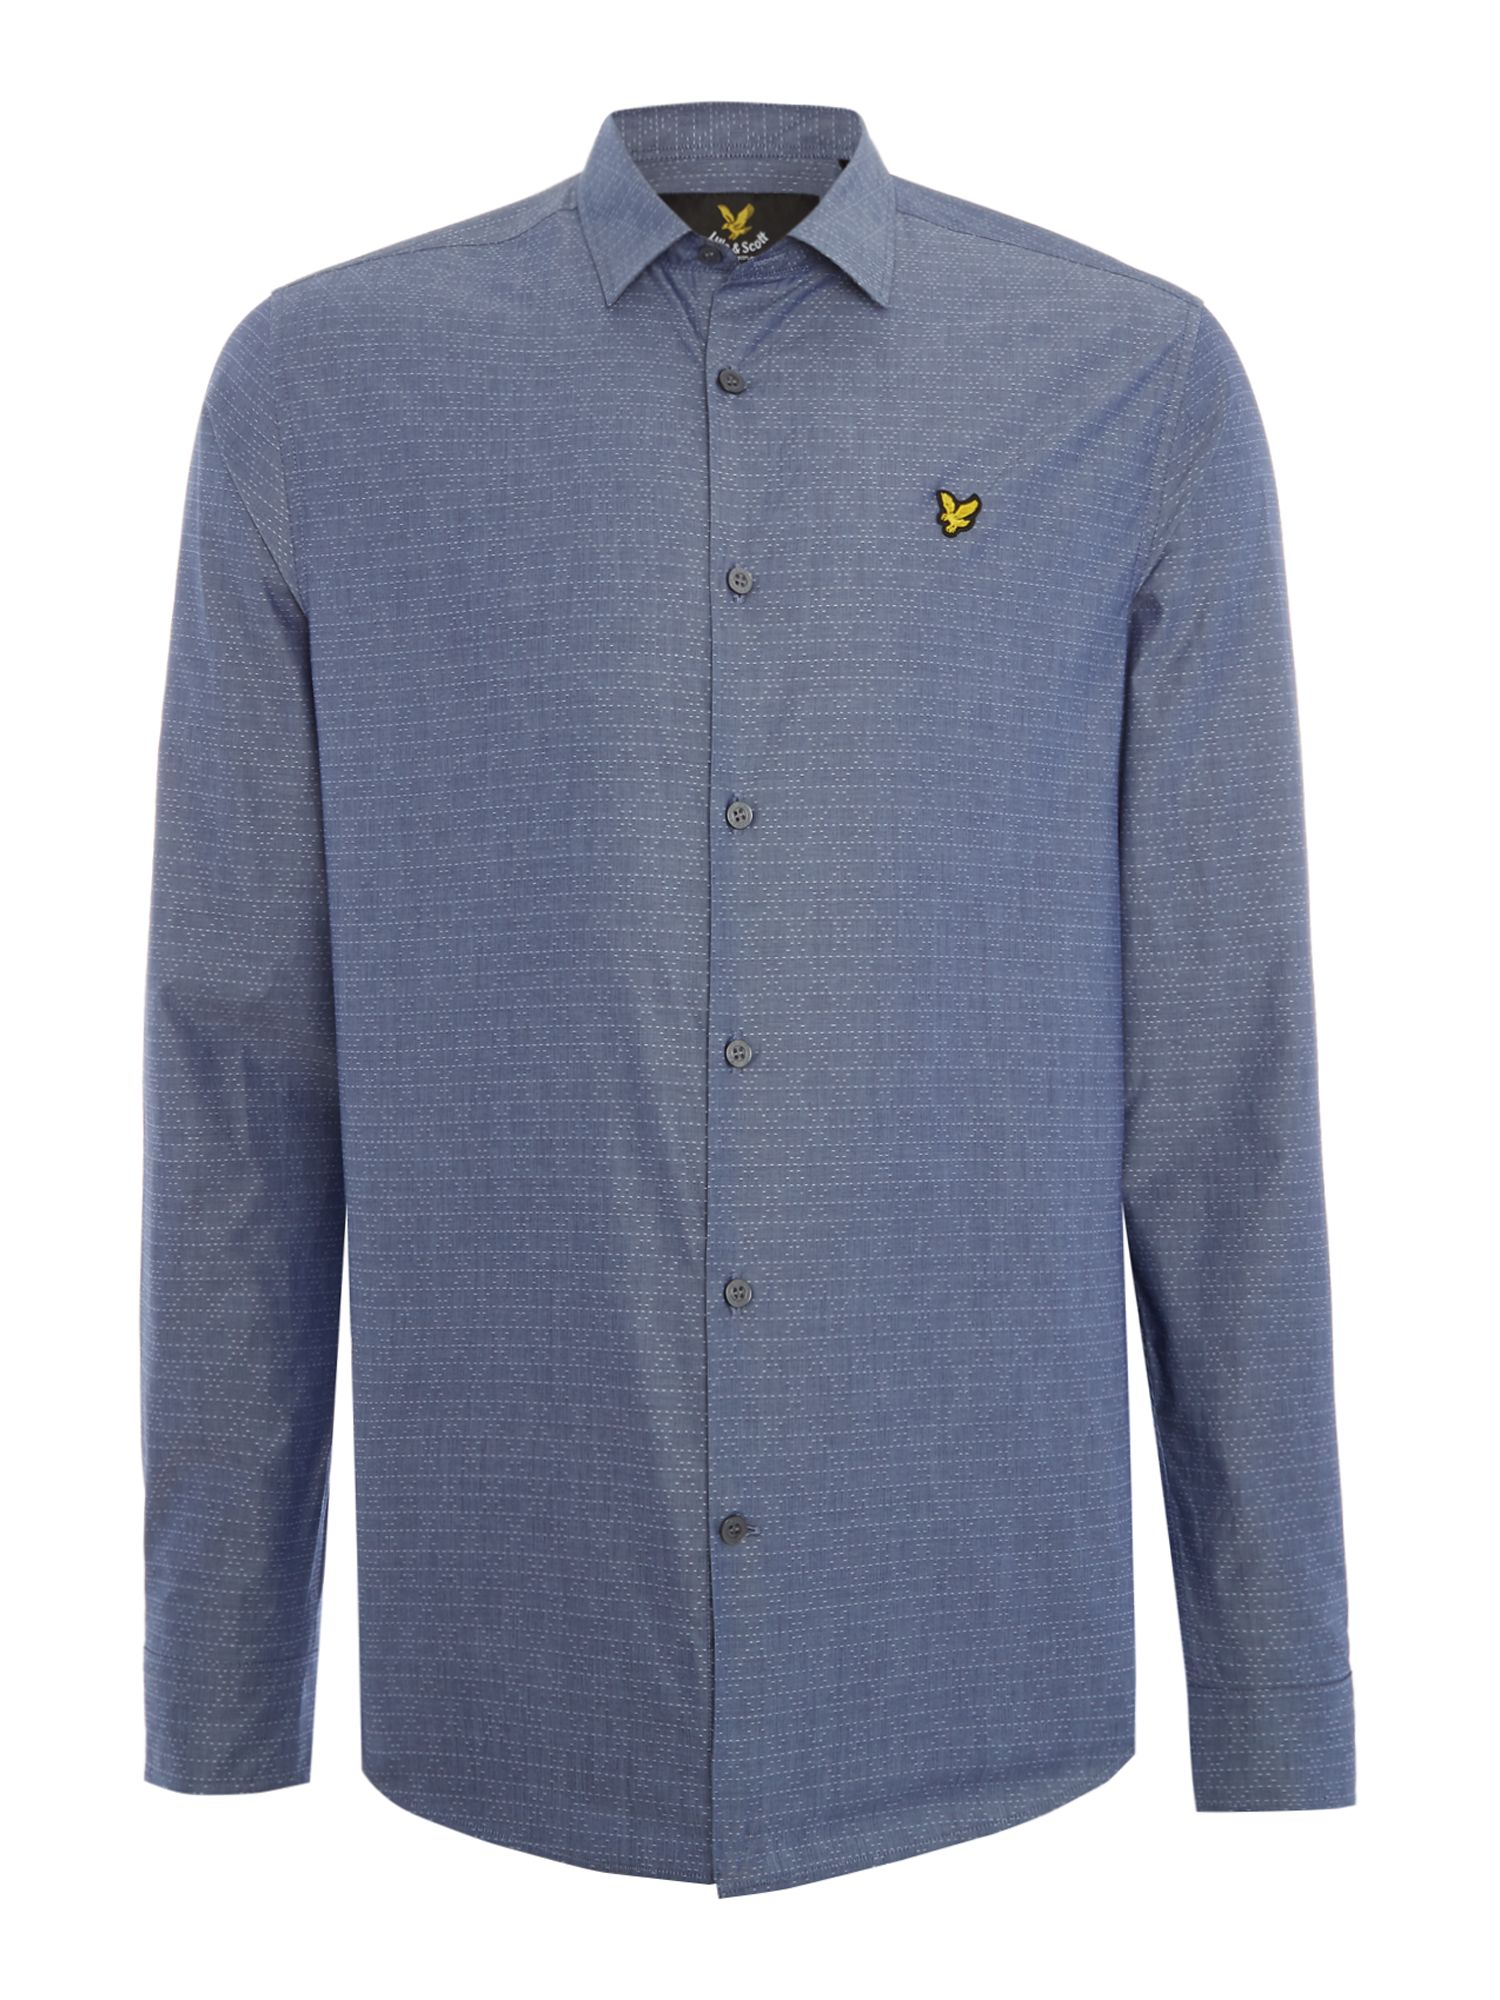 Lyle And Scott Brand Cheapest Prices Polo Shirts Men S